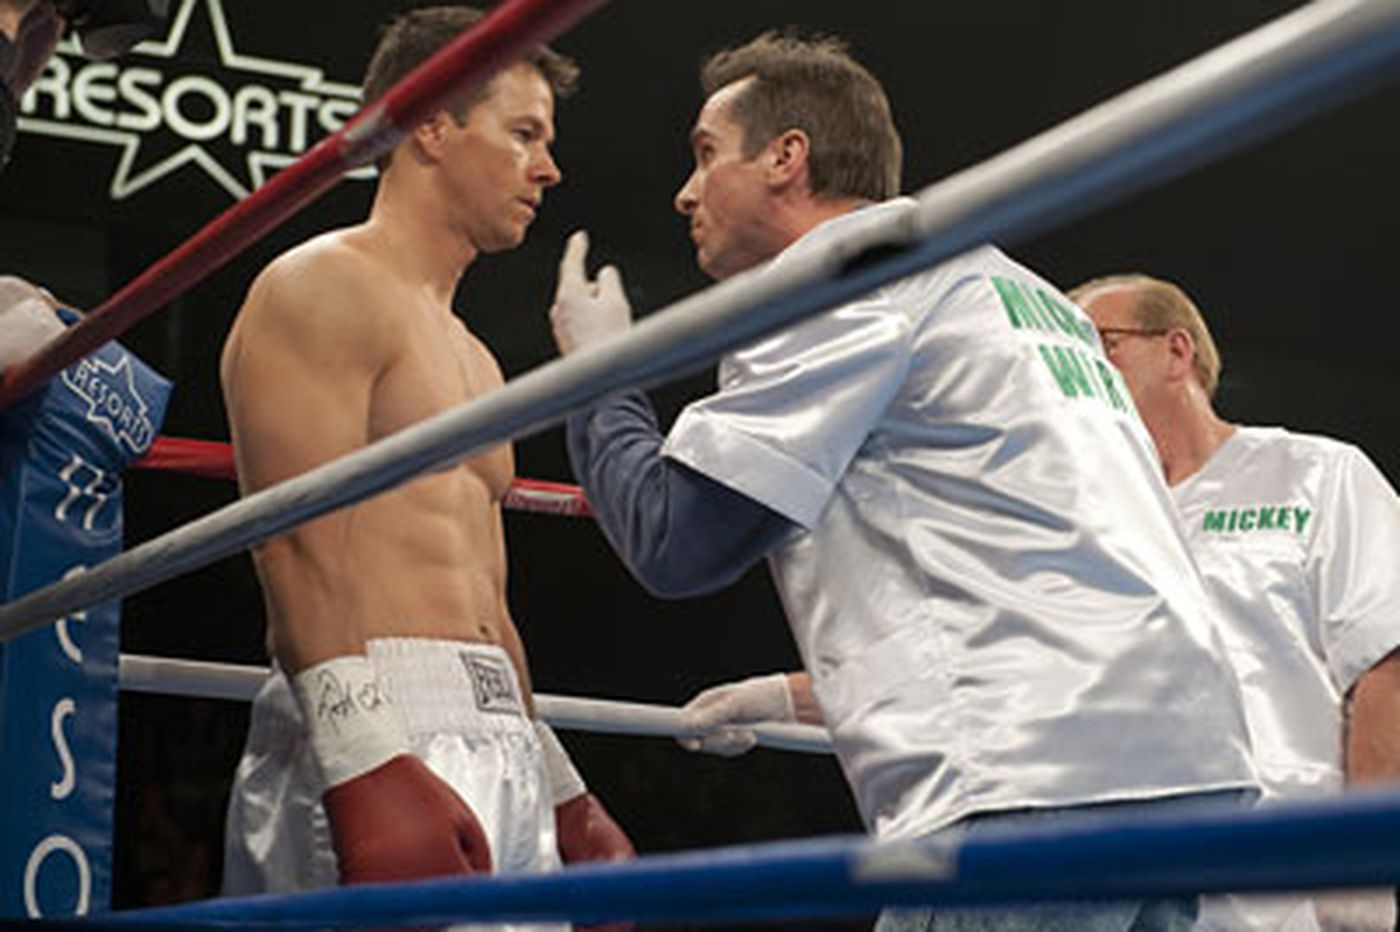 'The Fighter': Ferocity, angst, ambition and bonds